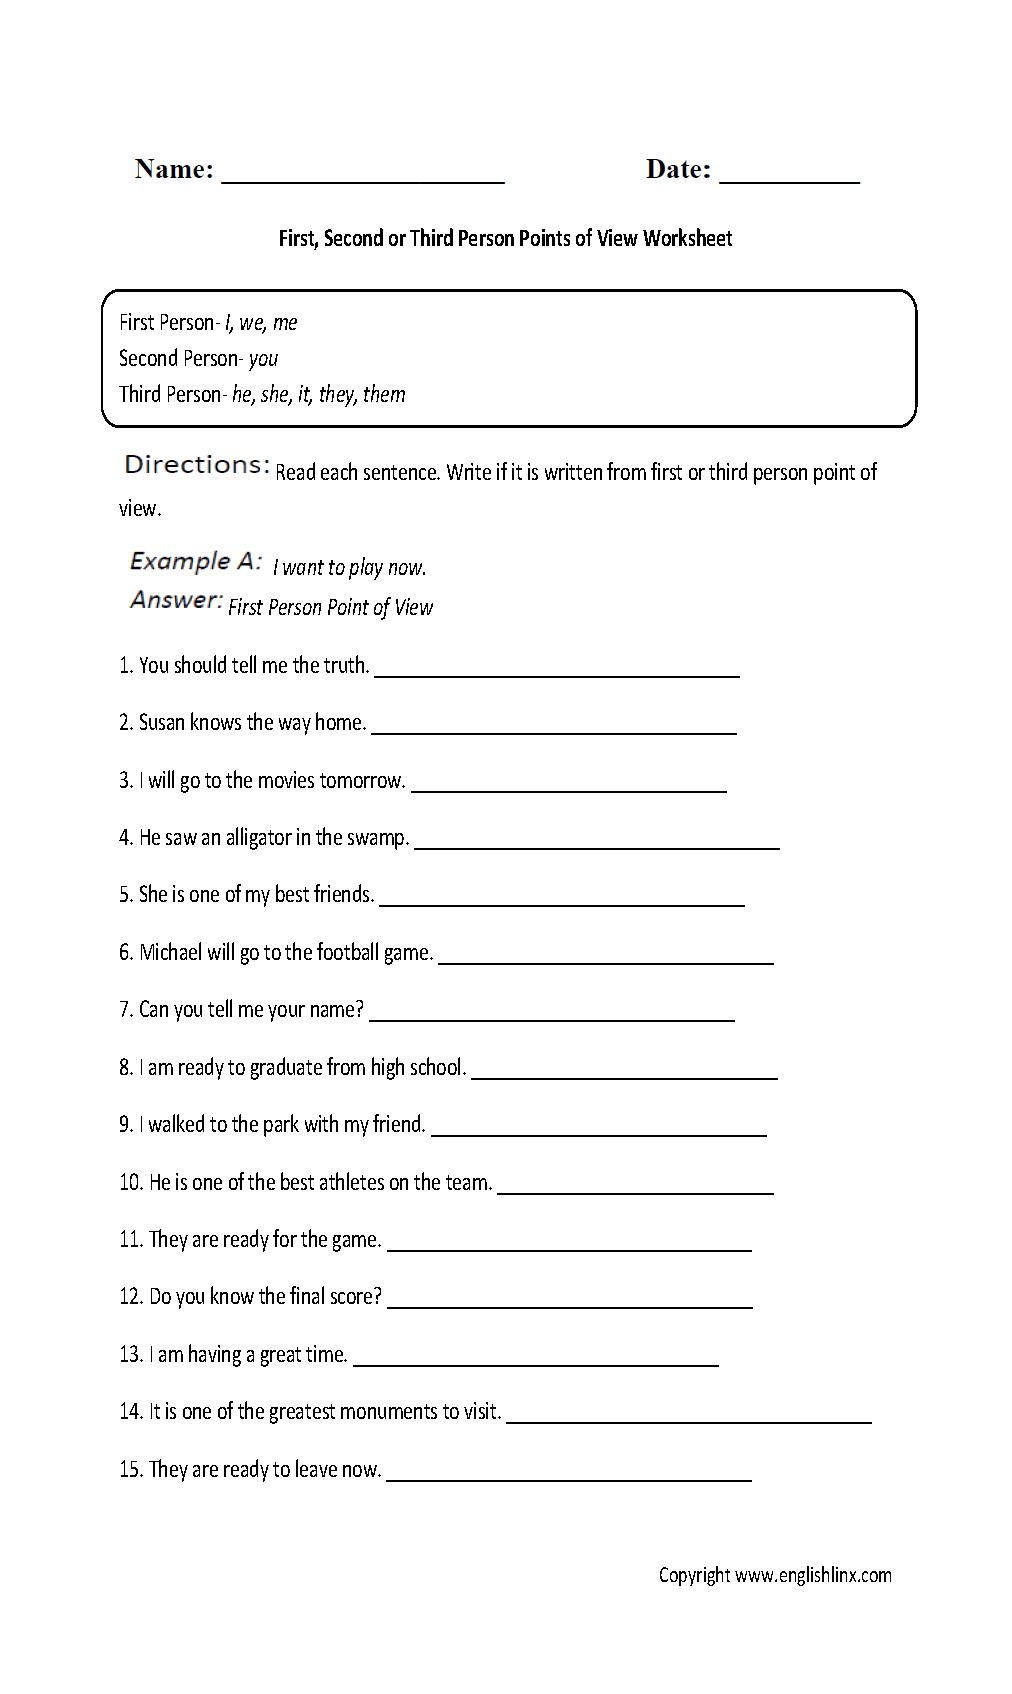 Weirdmailus  Remarkable Englishlinxcom  Point Of View Worksheets With Heavenly Point Of View Worksheet With Endearing Worksheets For Grade One Also Elementary Main Idea Worksheets In Addition Free Comprehension Worksheets For Nd Grade And Sets And Venn Diagrams Worksheets As Well As English Worksheets For Th Graders Additionally Question Marks Worksheets From Englishlinxcom With Weirdmailus  Heavenly Englishlinxcom  Point Of View Worksheets With Endearing Point Of View Worksheet And Remarkable Worksheets For Grade One Also Elementary Main Idea Worksheets In Addition Free Comprehension Worksheets For Nd Grade From Englishlinxcom